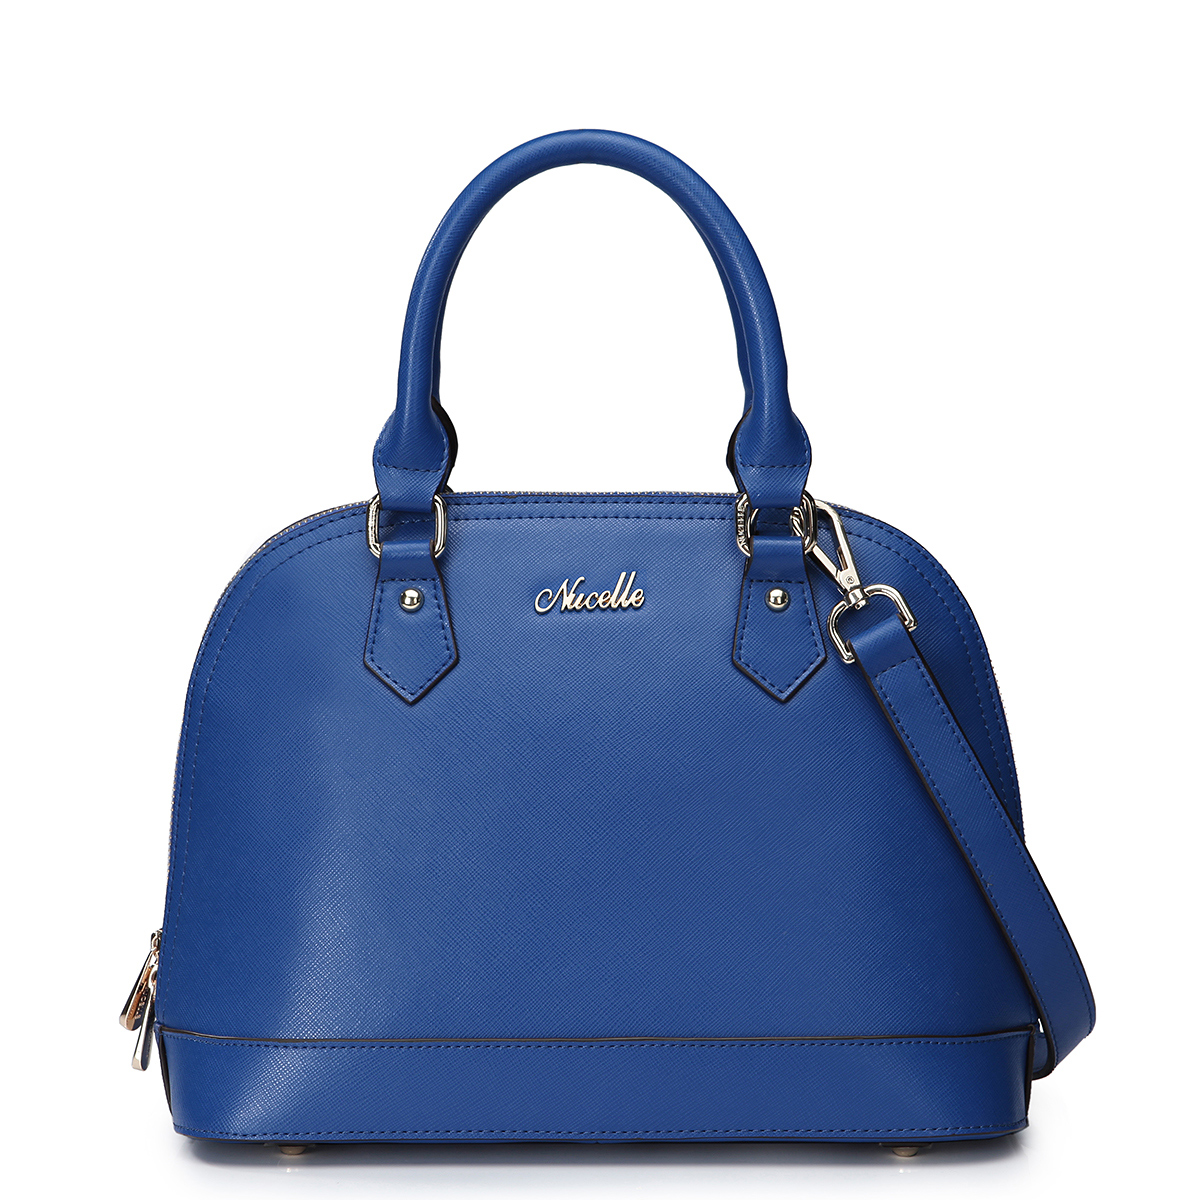 Blue Leather Handbags | Luggage And Suitcases